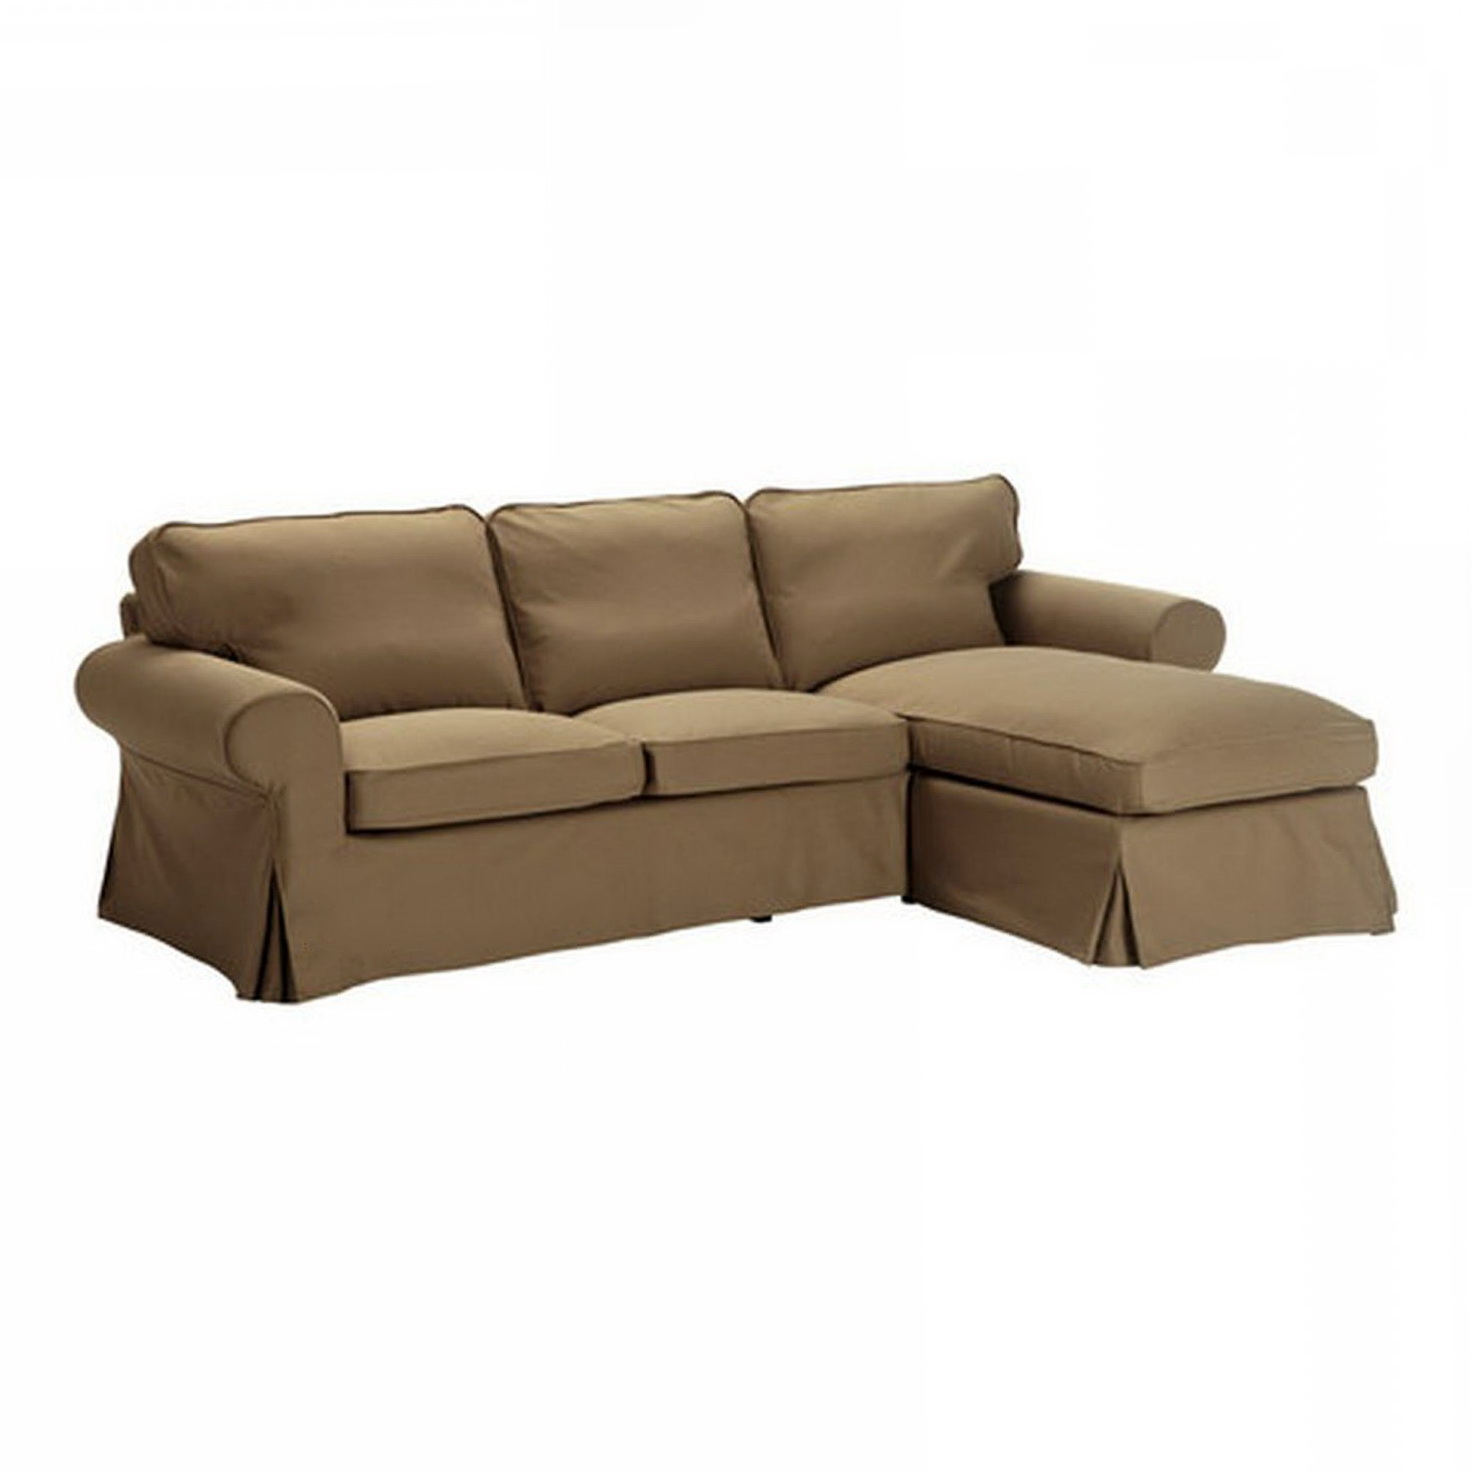 Loveseat With Chaise Luxury Home Furniture Round Rattan Loveseat With Baldwin 2 Piece